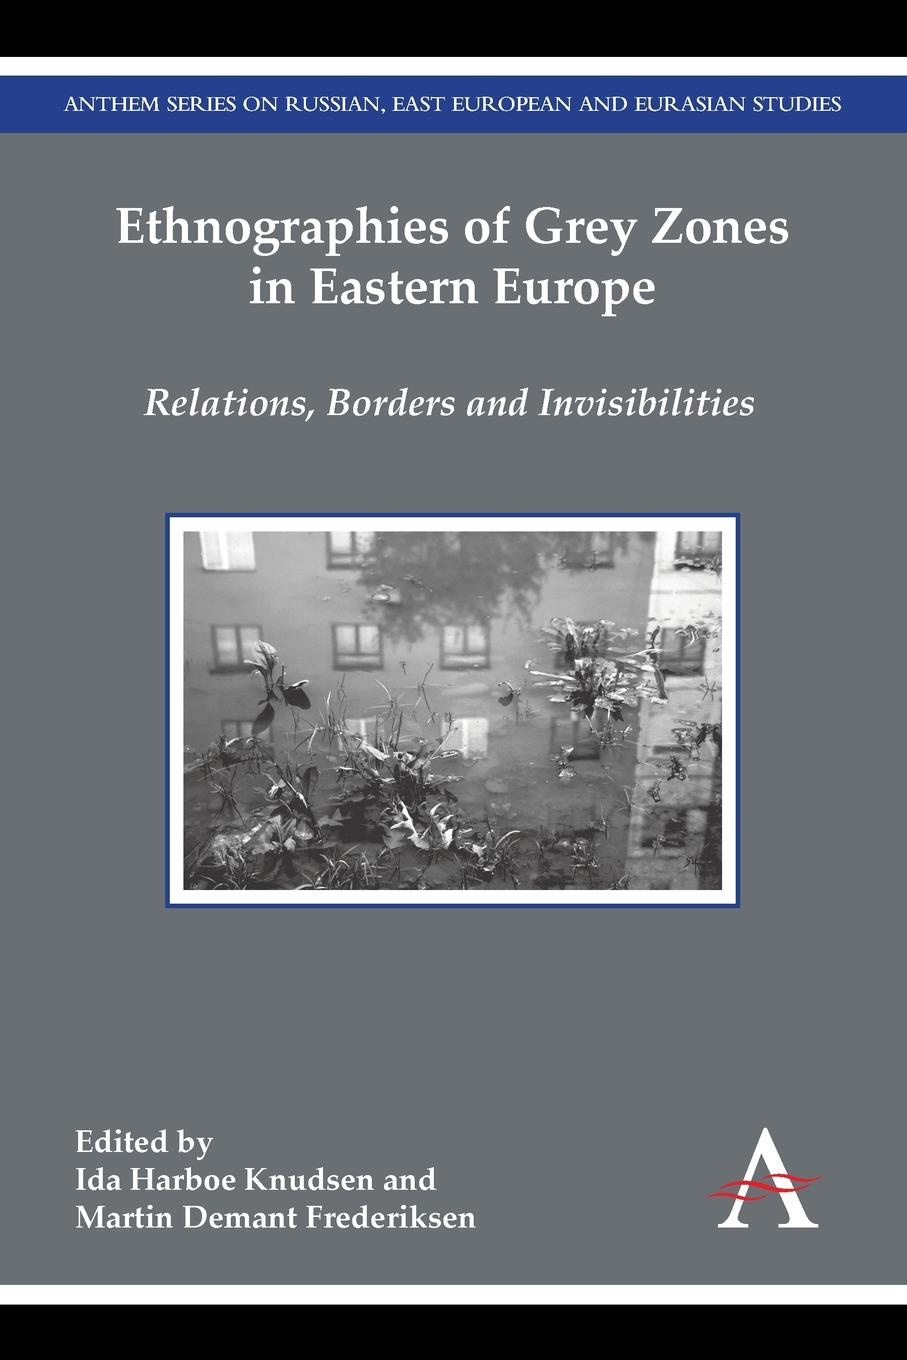 Ethnographies of Grey Zones in Eastern Europe. Relations, Borders and Invisibilities потолочная люстра mw light прато 1 101010708